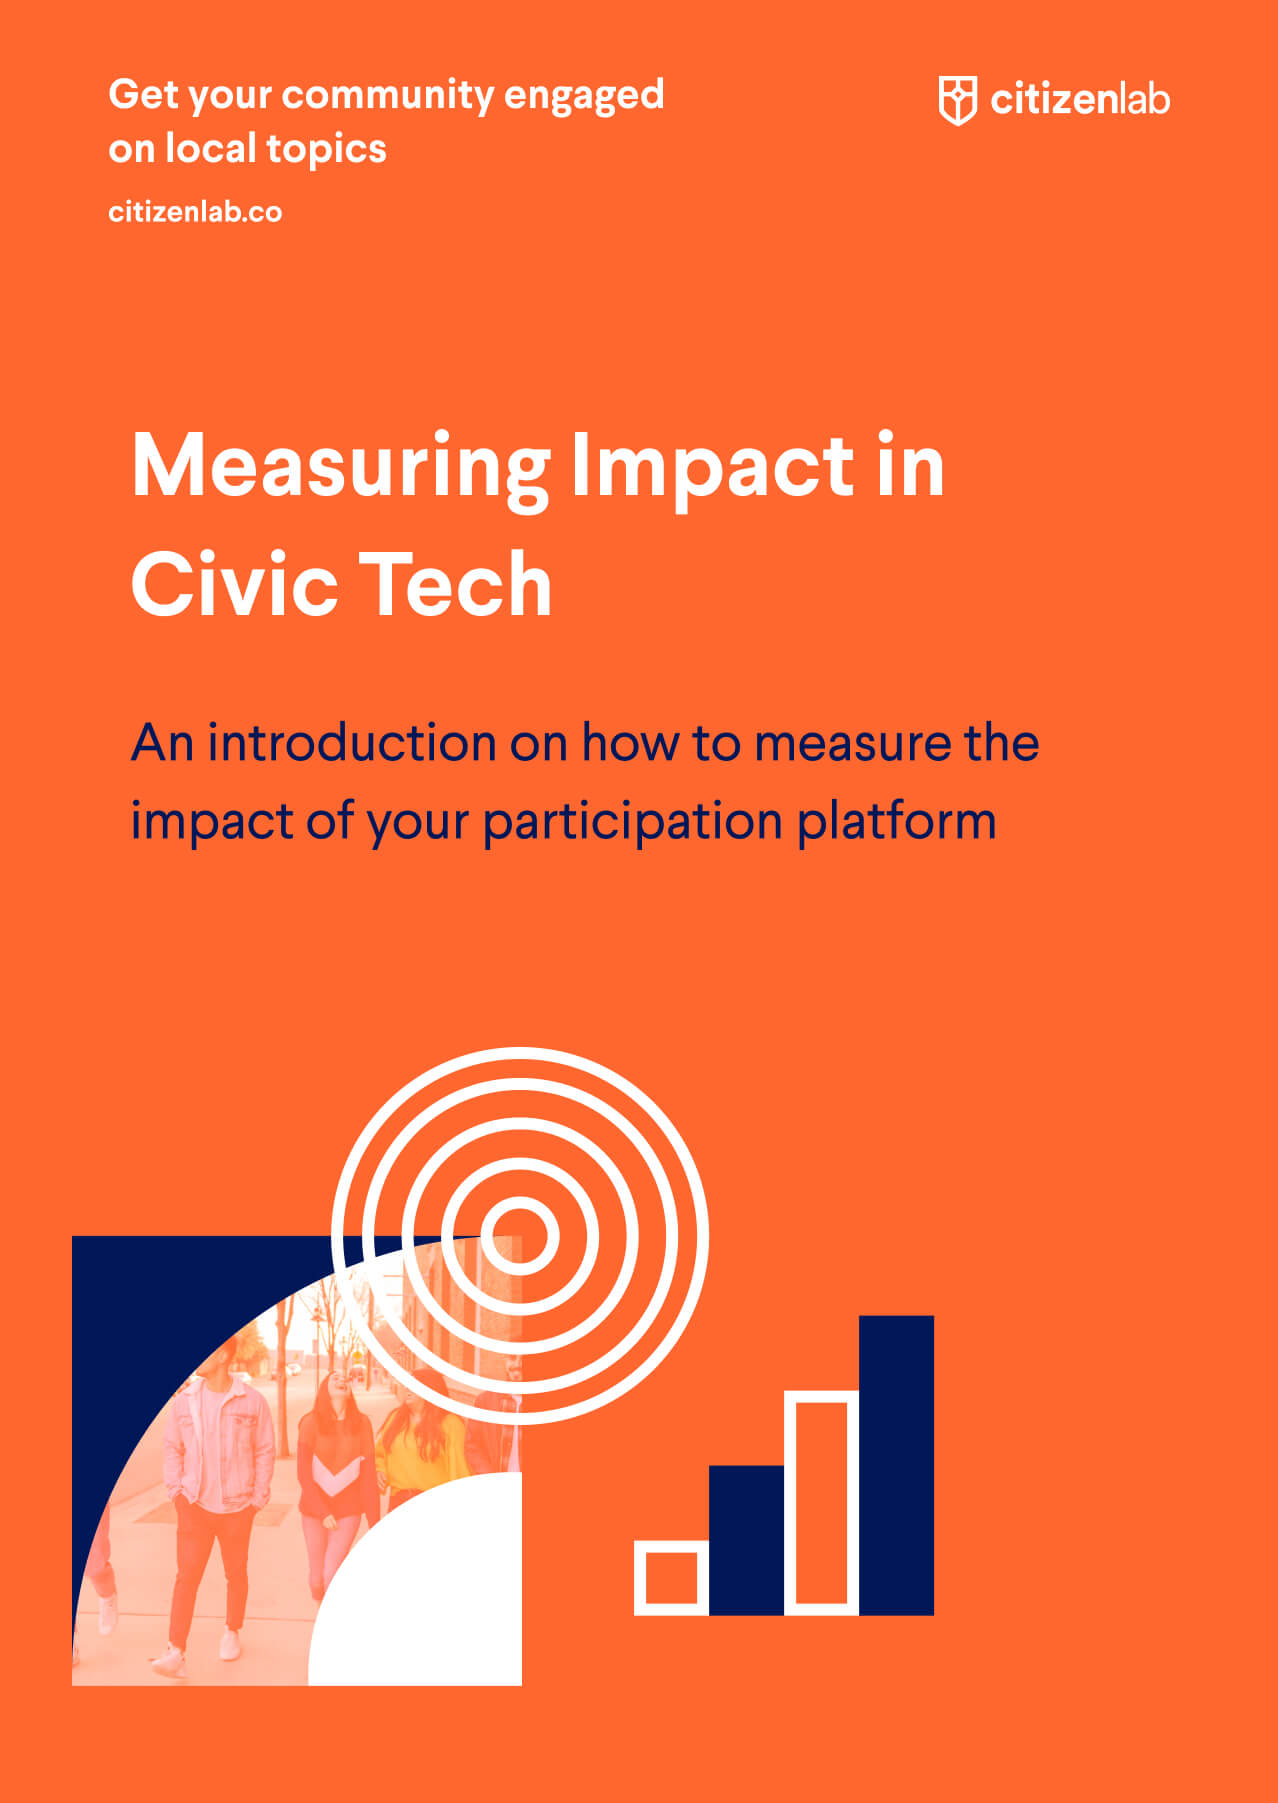 cover page of measuring impact community engagement guide